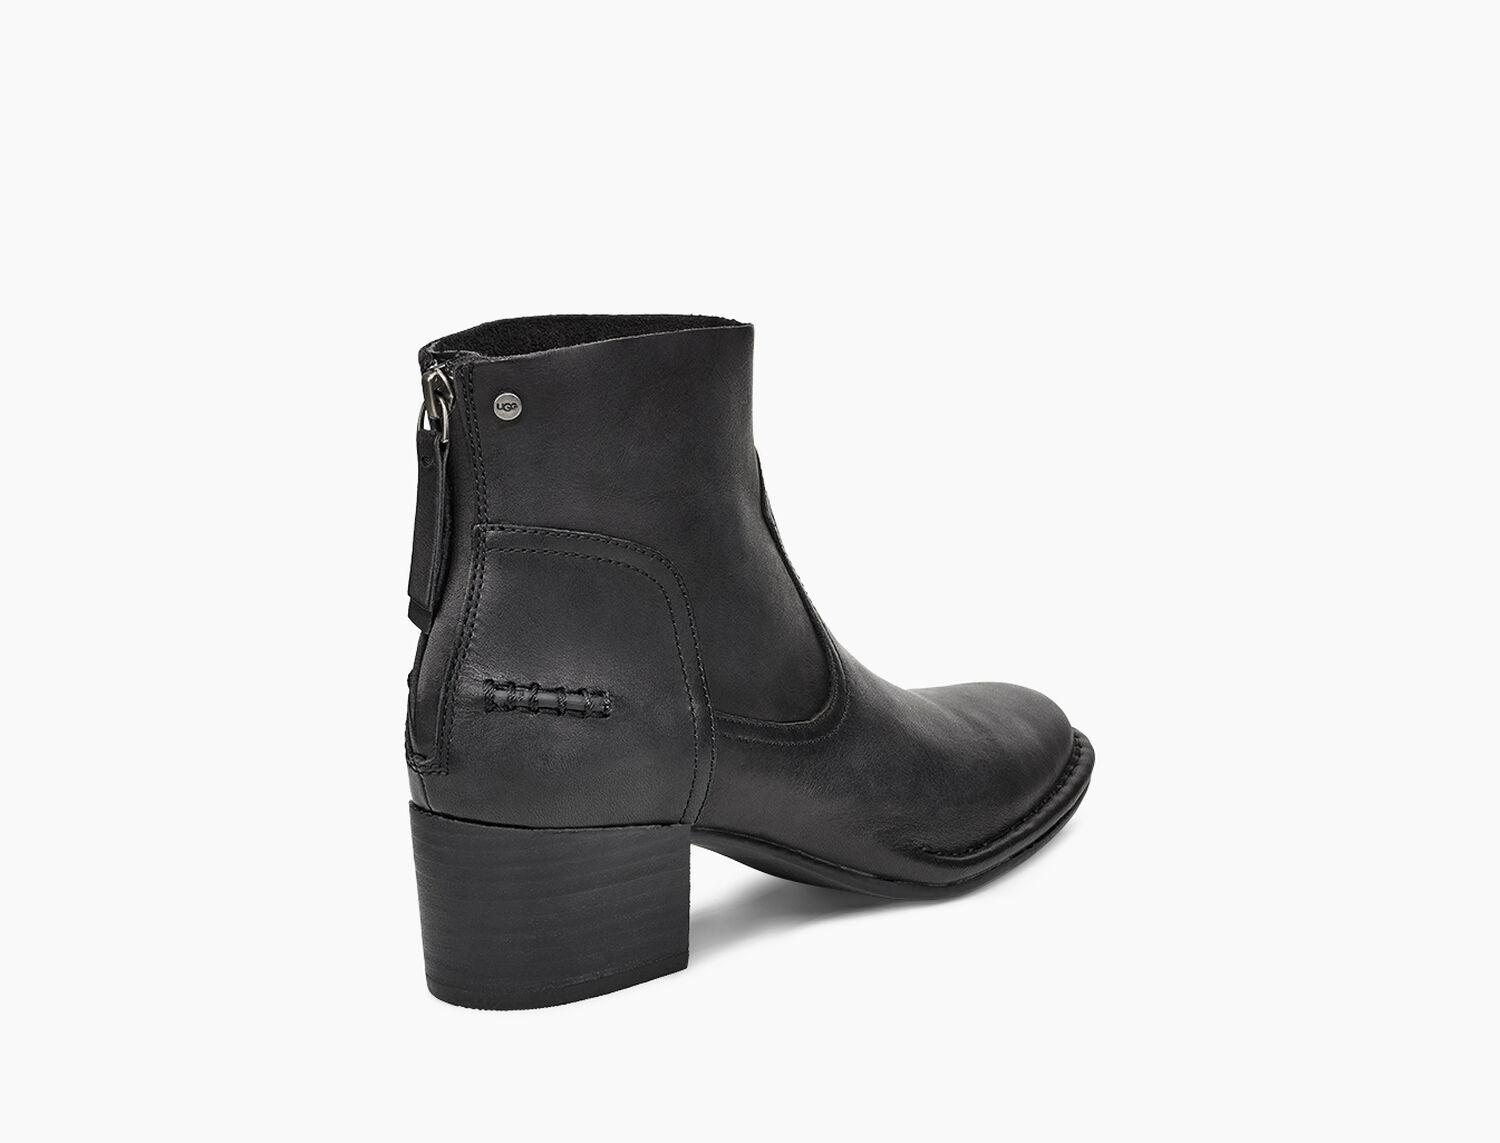 ce69327d444 Women's Share this product Bandara Ankle Boot